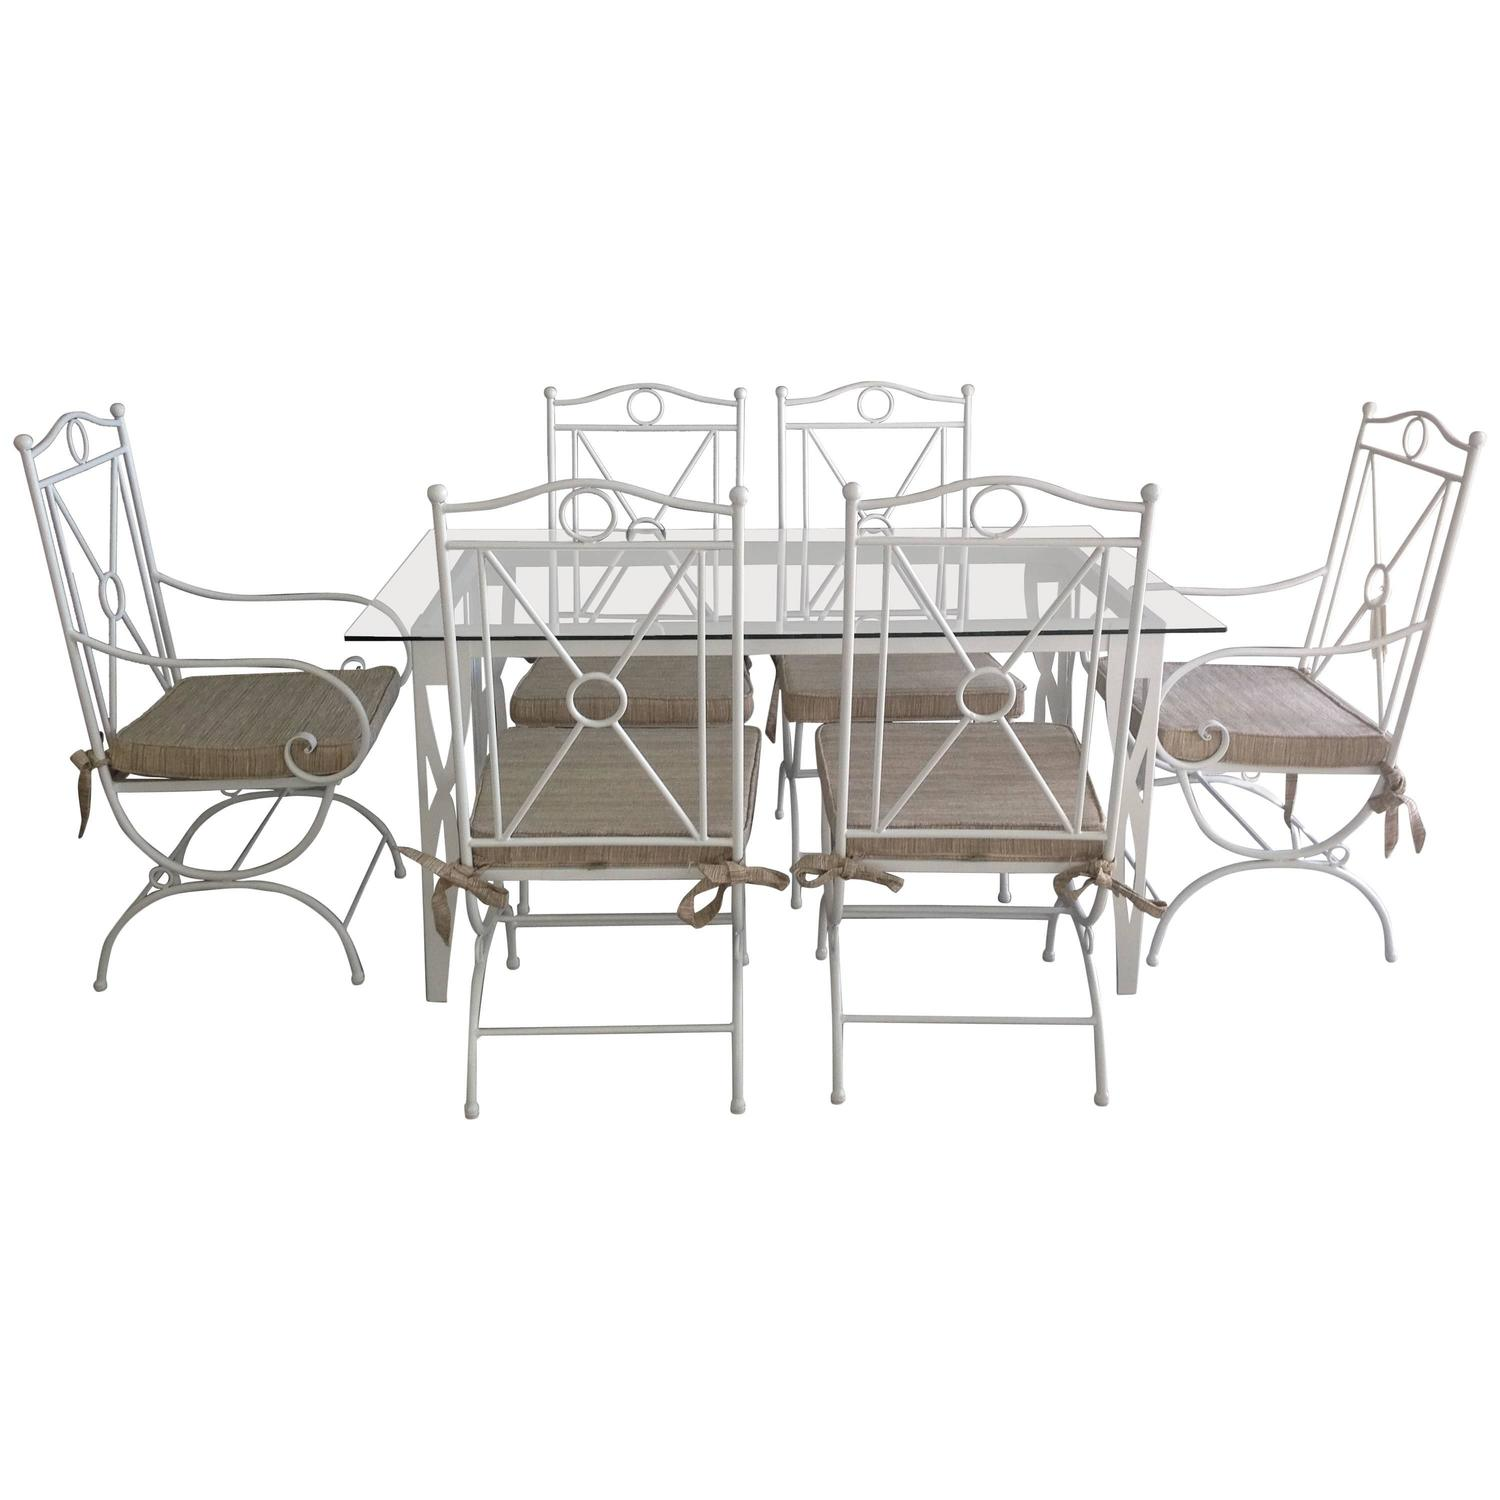 handmade white wrought iron patio dining set garden furniture for sale